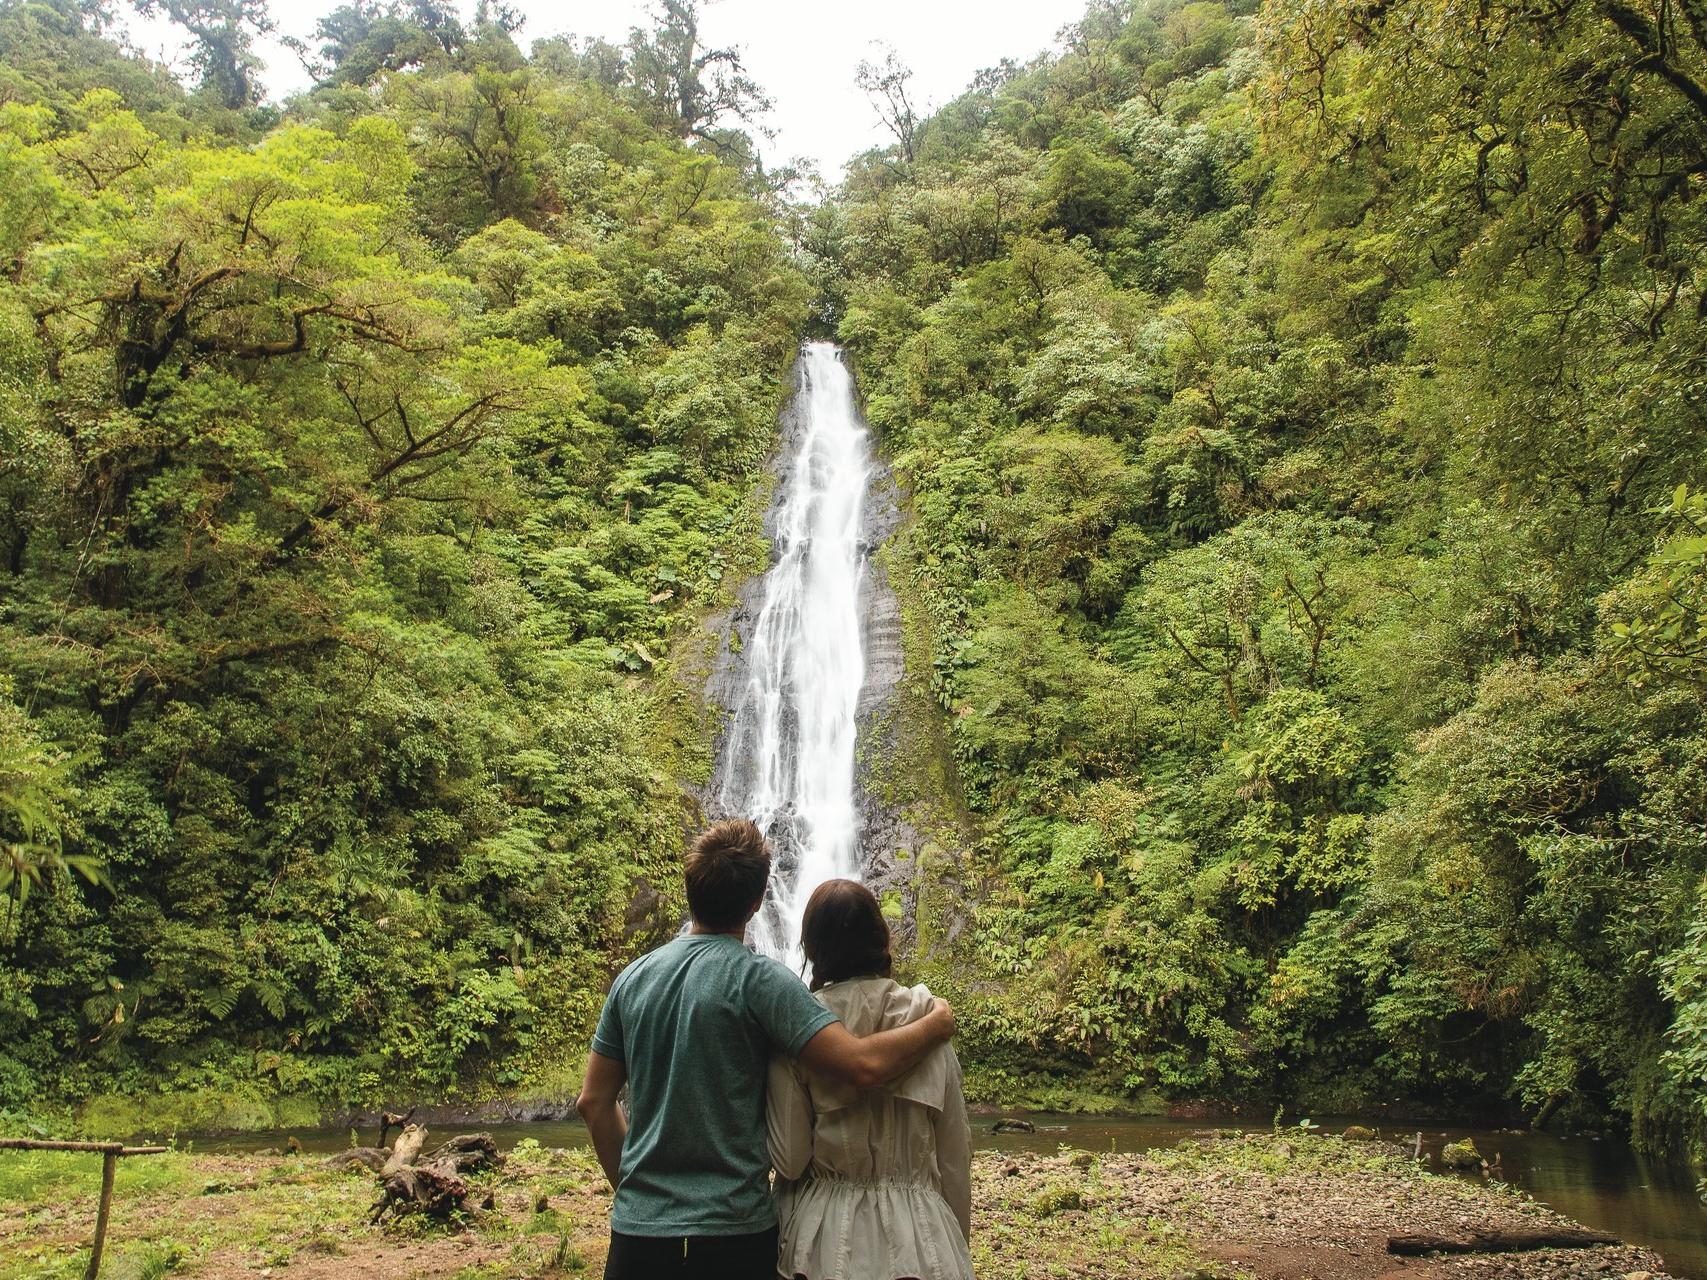 couple standing in front of watefall